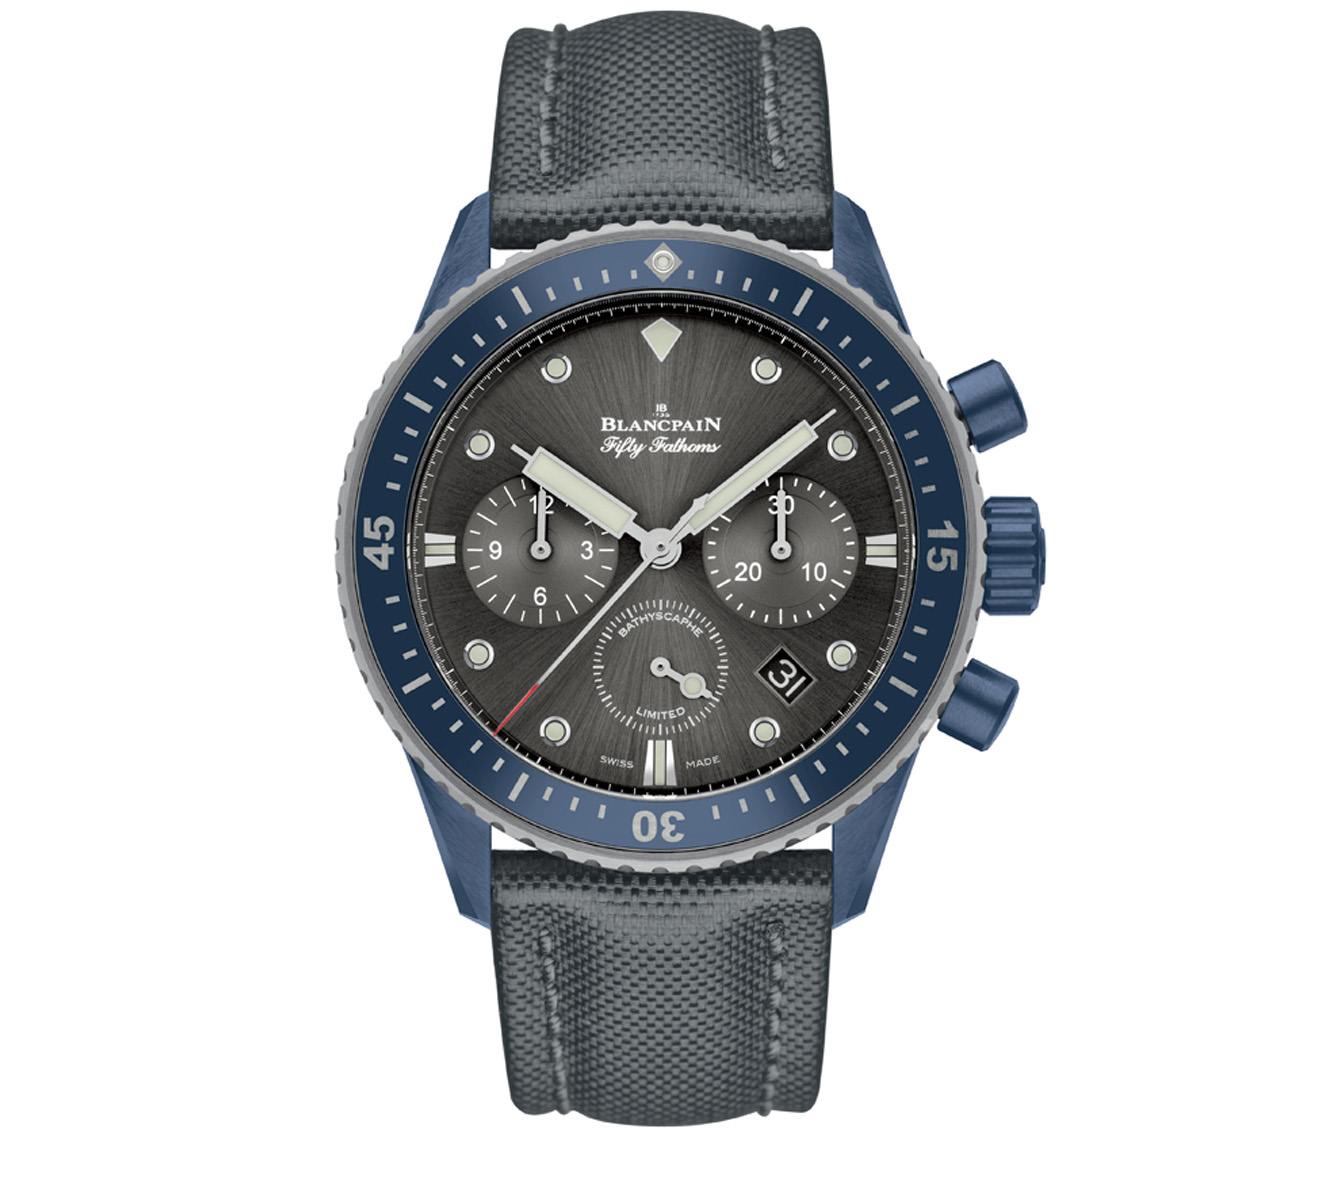 Часы Bathyscaphe Chronographe Flyback Ocean Commitment Blancpain Fifty Fathoms 5200 0310 G52 A - фото 1 – Mercury